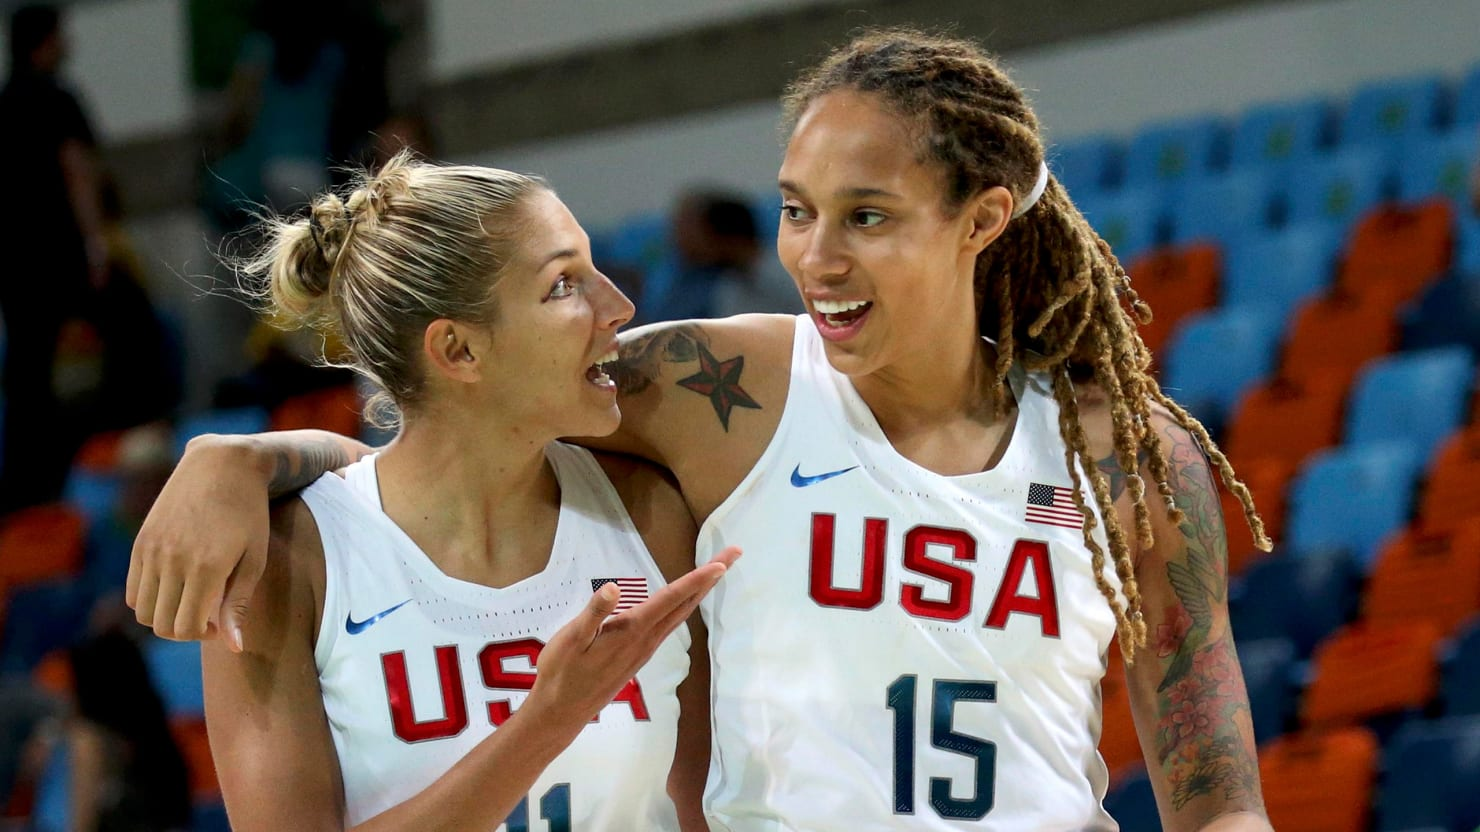 Rio olympics 2016 how to watch usa womens basketball semifinal the us womens basketball team has won gold at every summer olympics since 1996 can they pull off another victory in rio freerunsca Image collections